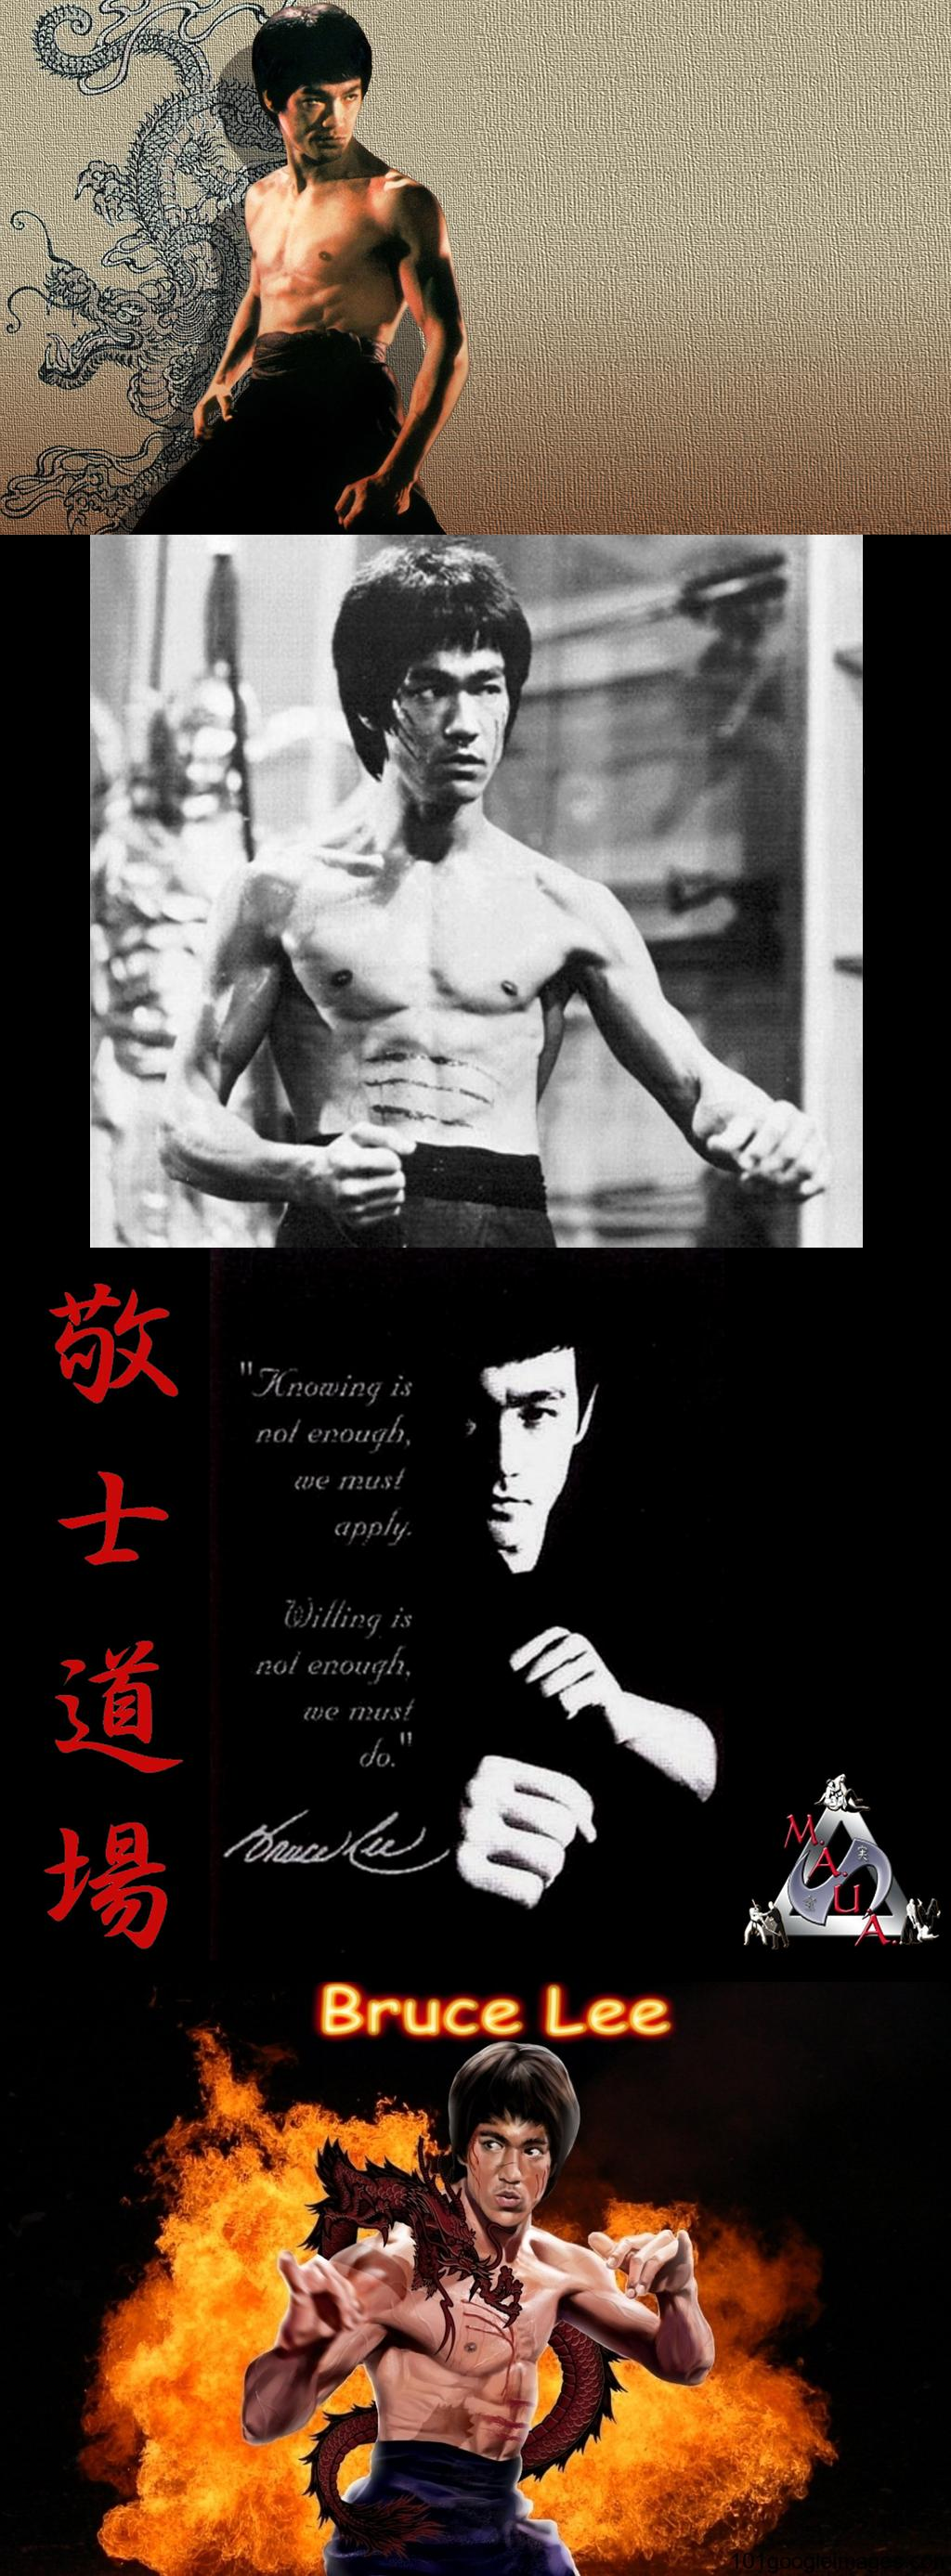 Bruce-Lee-enter-the-dragon-wallpaper-wp440213